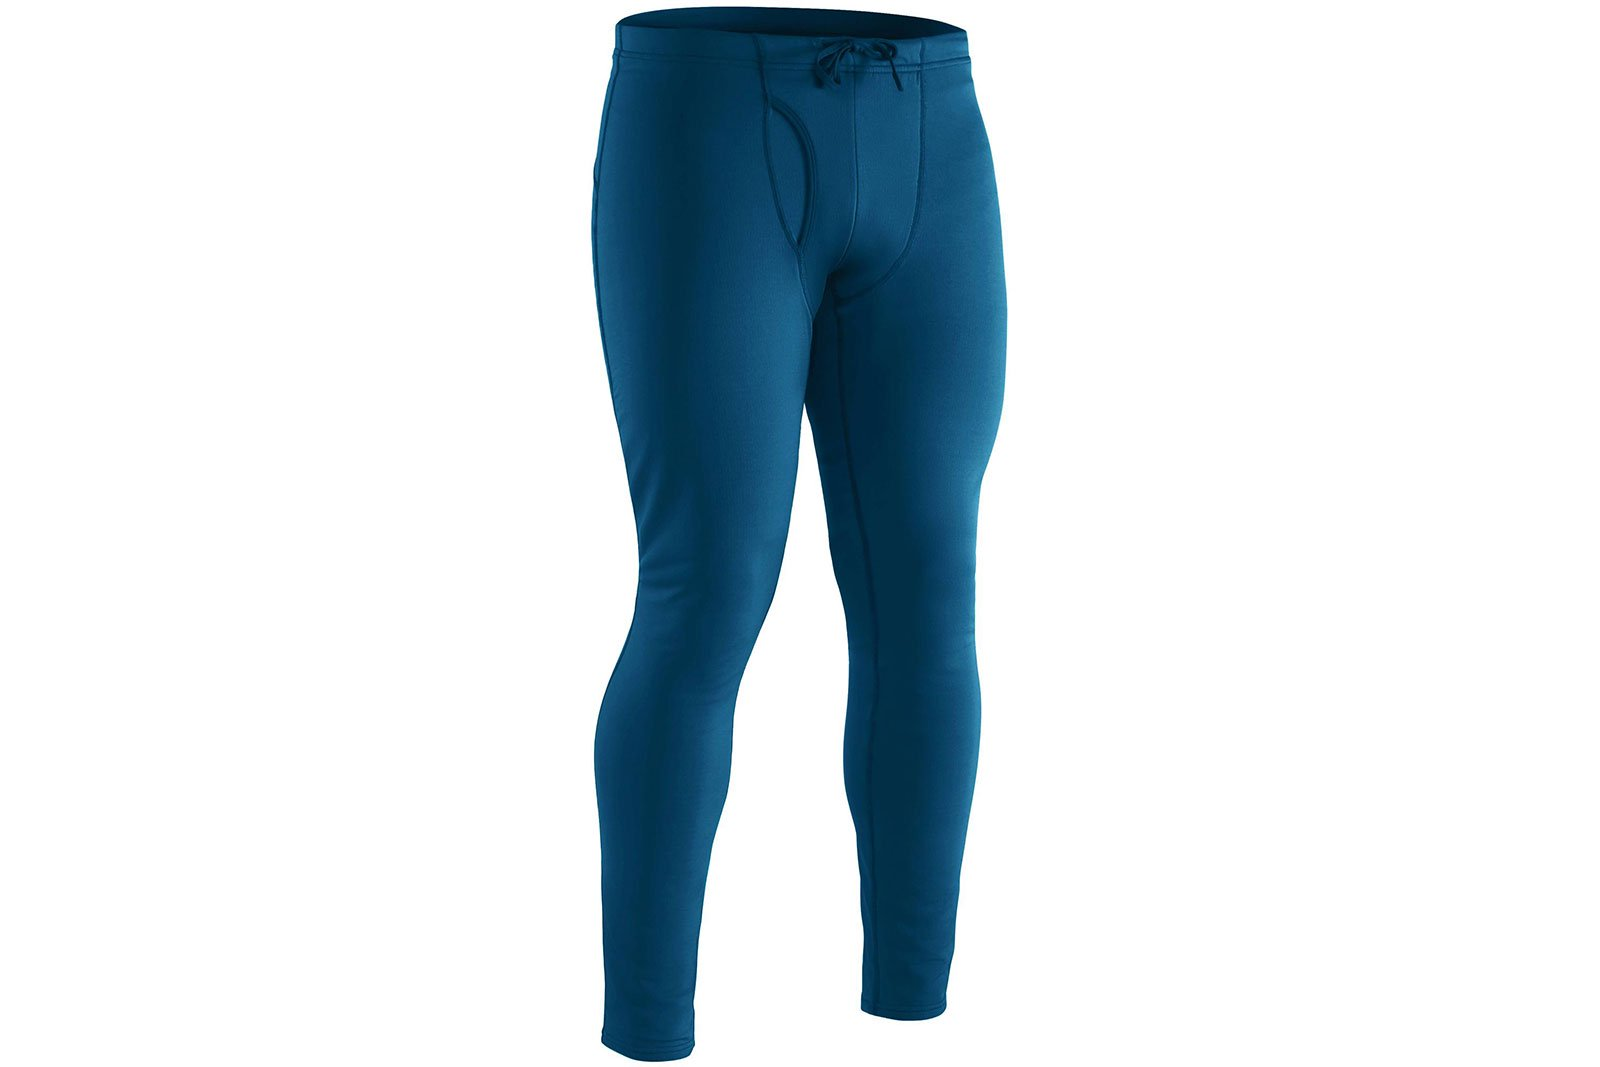 <img class='new_mark_img1' src='https://img.shop-pro.jp/img/new/icons5.gif' style='border:none;display:inline;margin:0px;padding:0px;width:auto;' />NRS Men's H2Core Lightweight Pant ライトウェイトパンツ (10122)